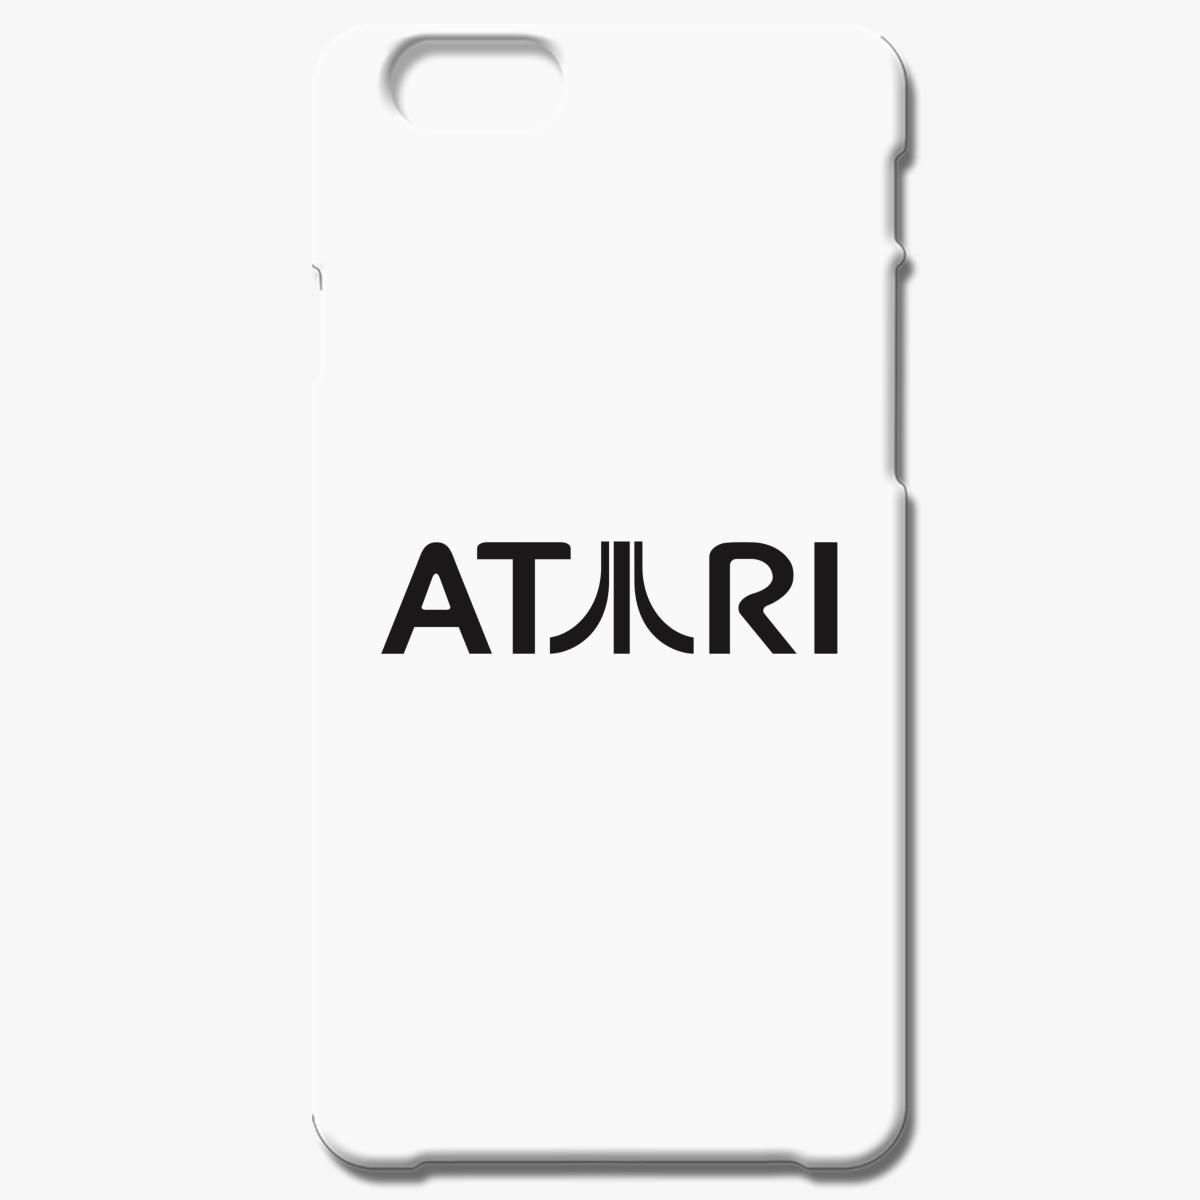 Atari Iphone 8 Plus Case